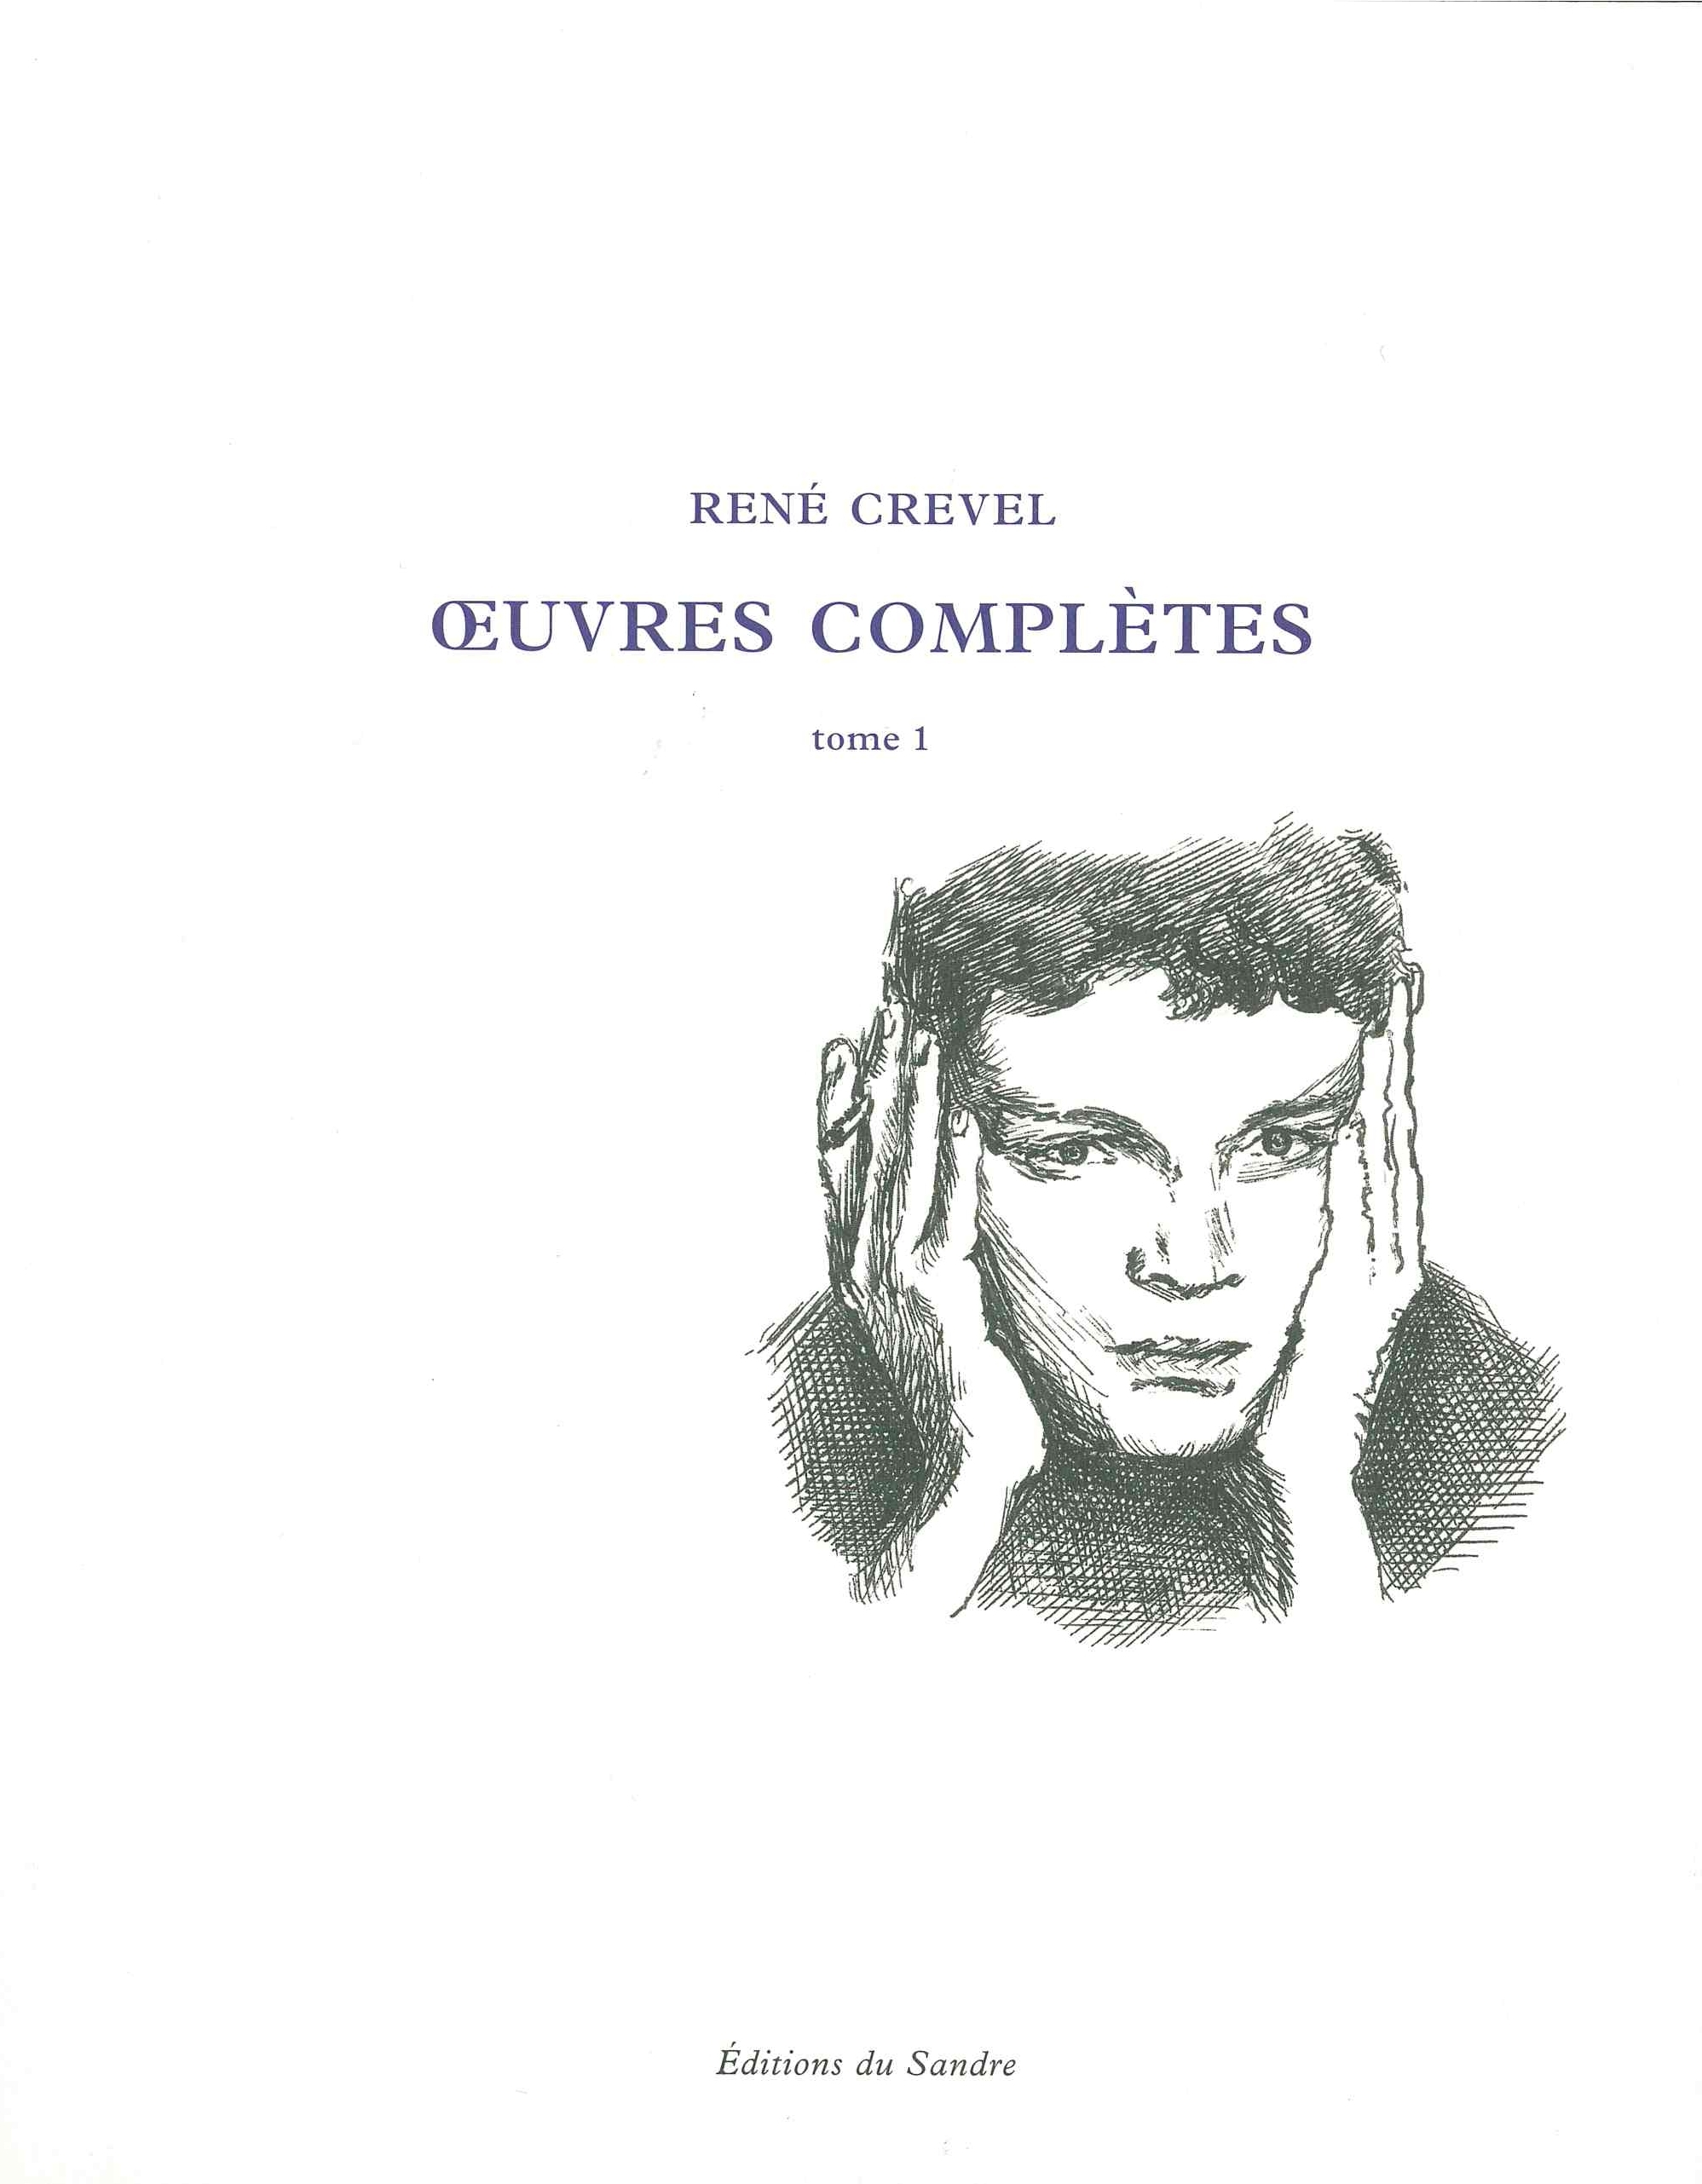 OEUVRES COMPLETES 1